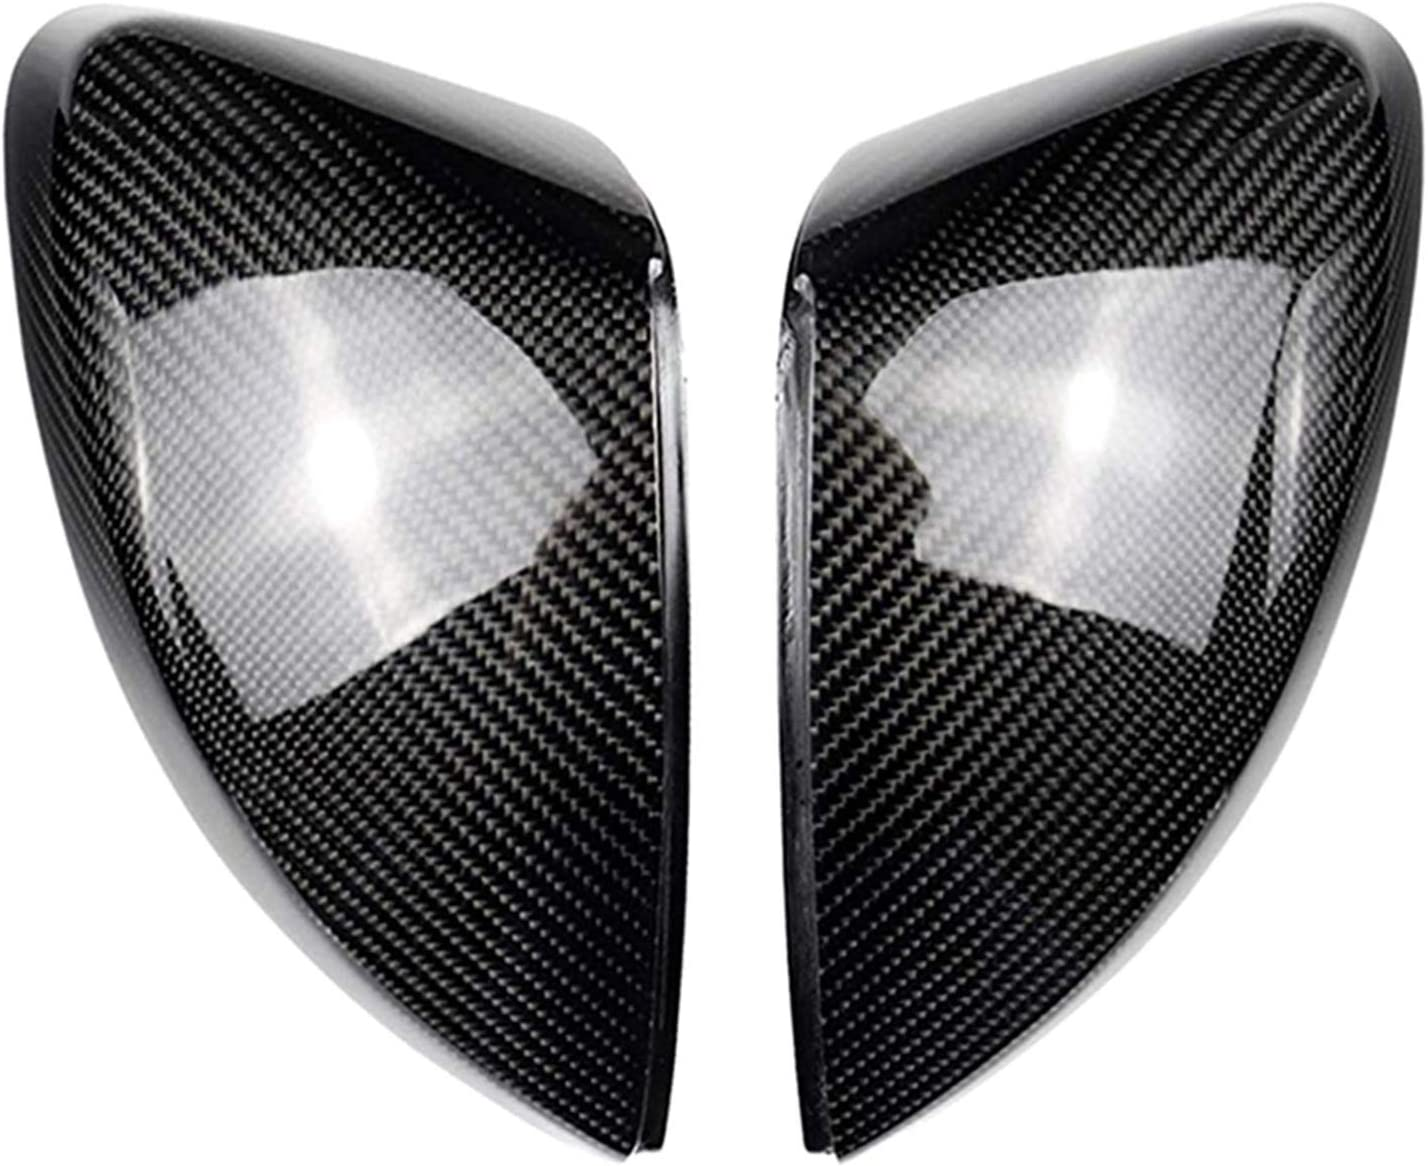 SHUAI Popular products 1 Pair Side Mirror Covers A3 Audi Classic Fit S3 Cars for